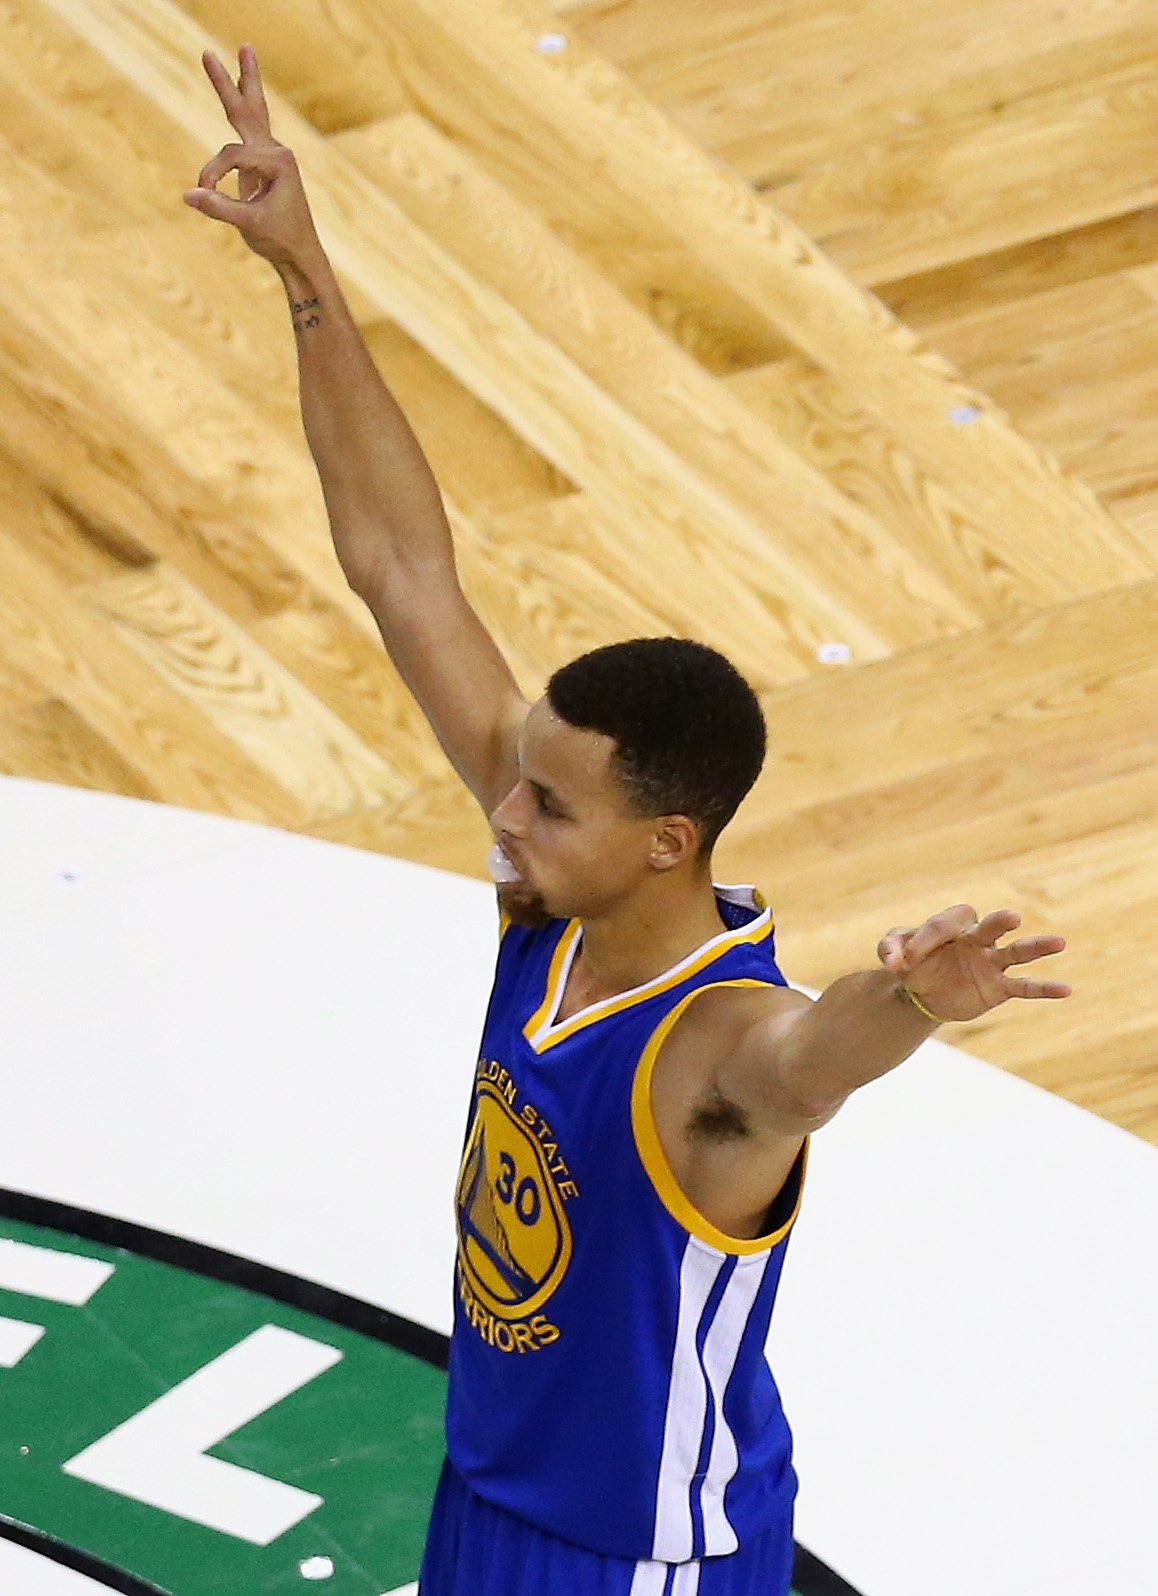 BOSTON, MA - DECEMBER 11:  Stephen Curry #30 of the Golden State Warriors reacts during overtime against the Boston Celtics at TD Garden on December 11, 2015 in Boston, Massachusetts. The Warriors defeat the Celtics 124-119. (Photo by Maddie Meyer/Getty I